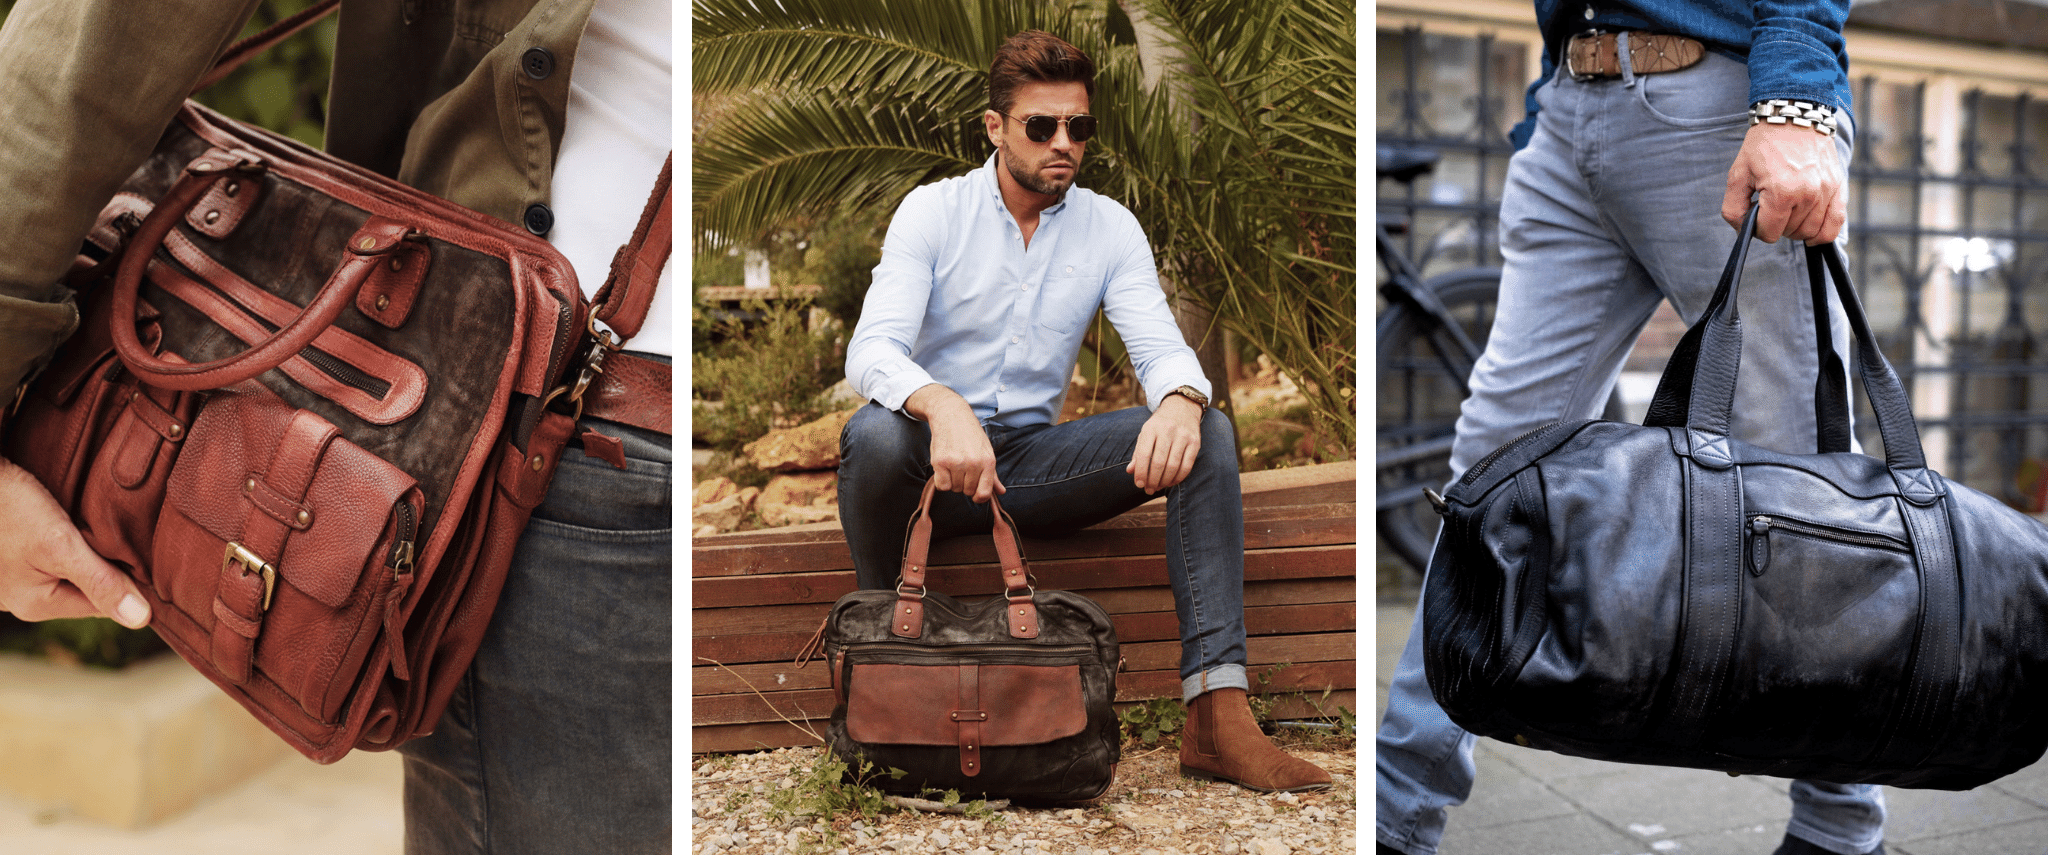 men with leather bags